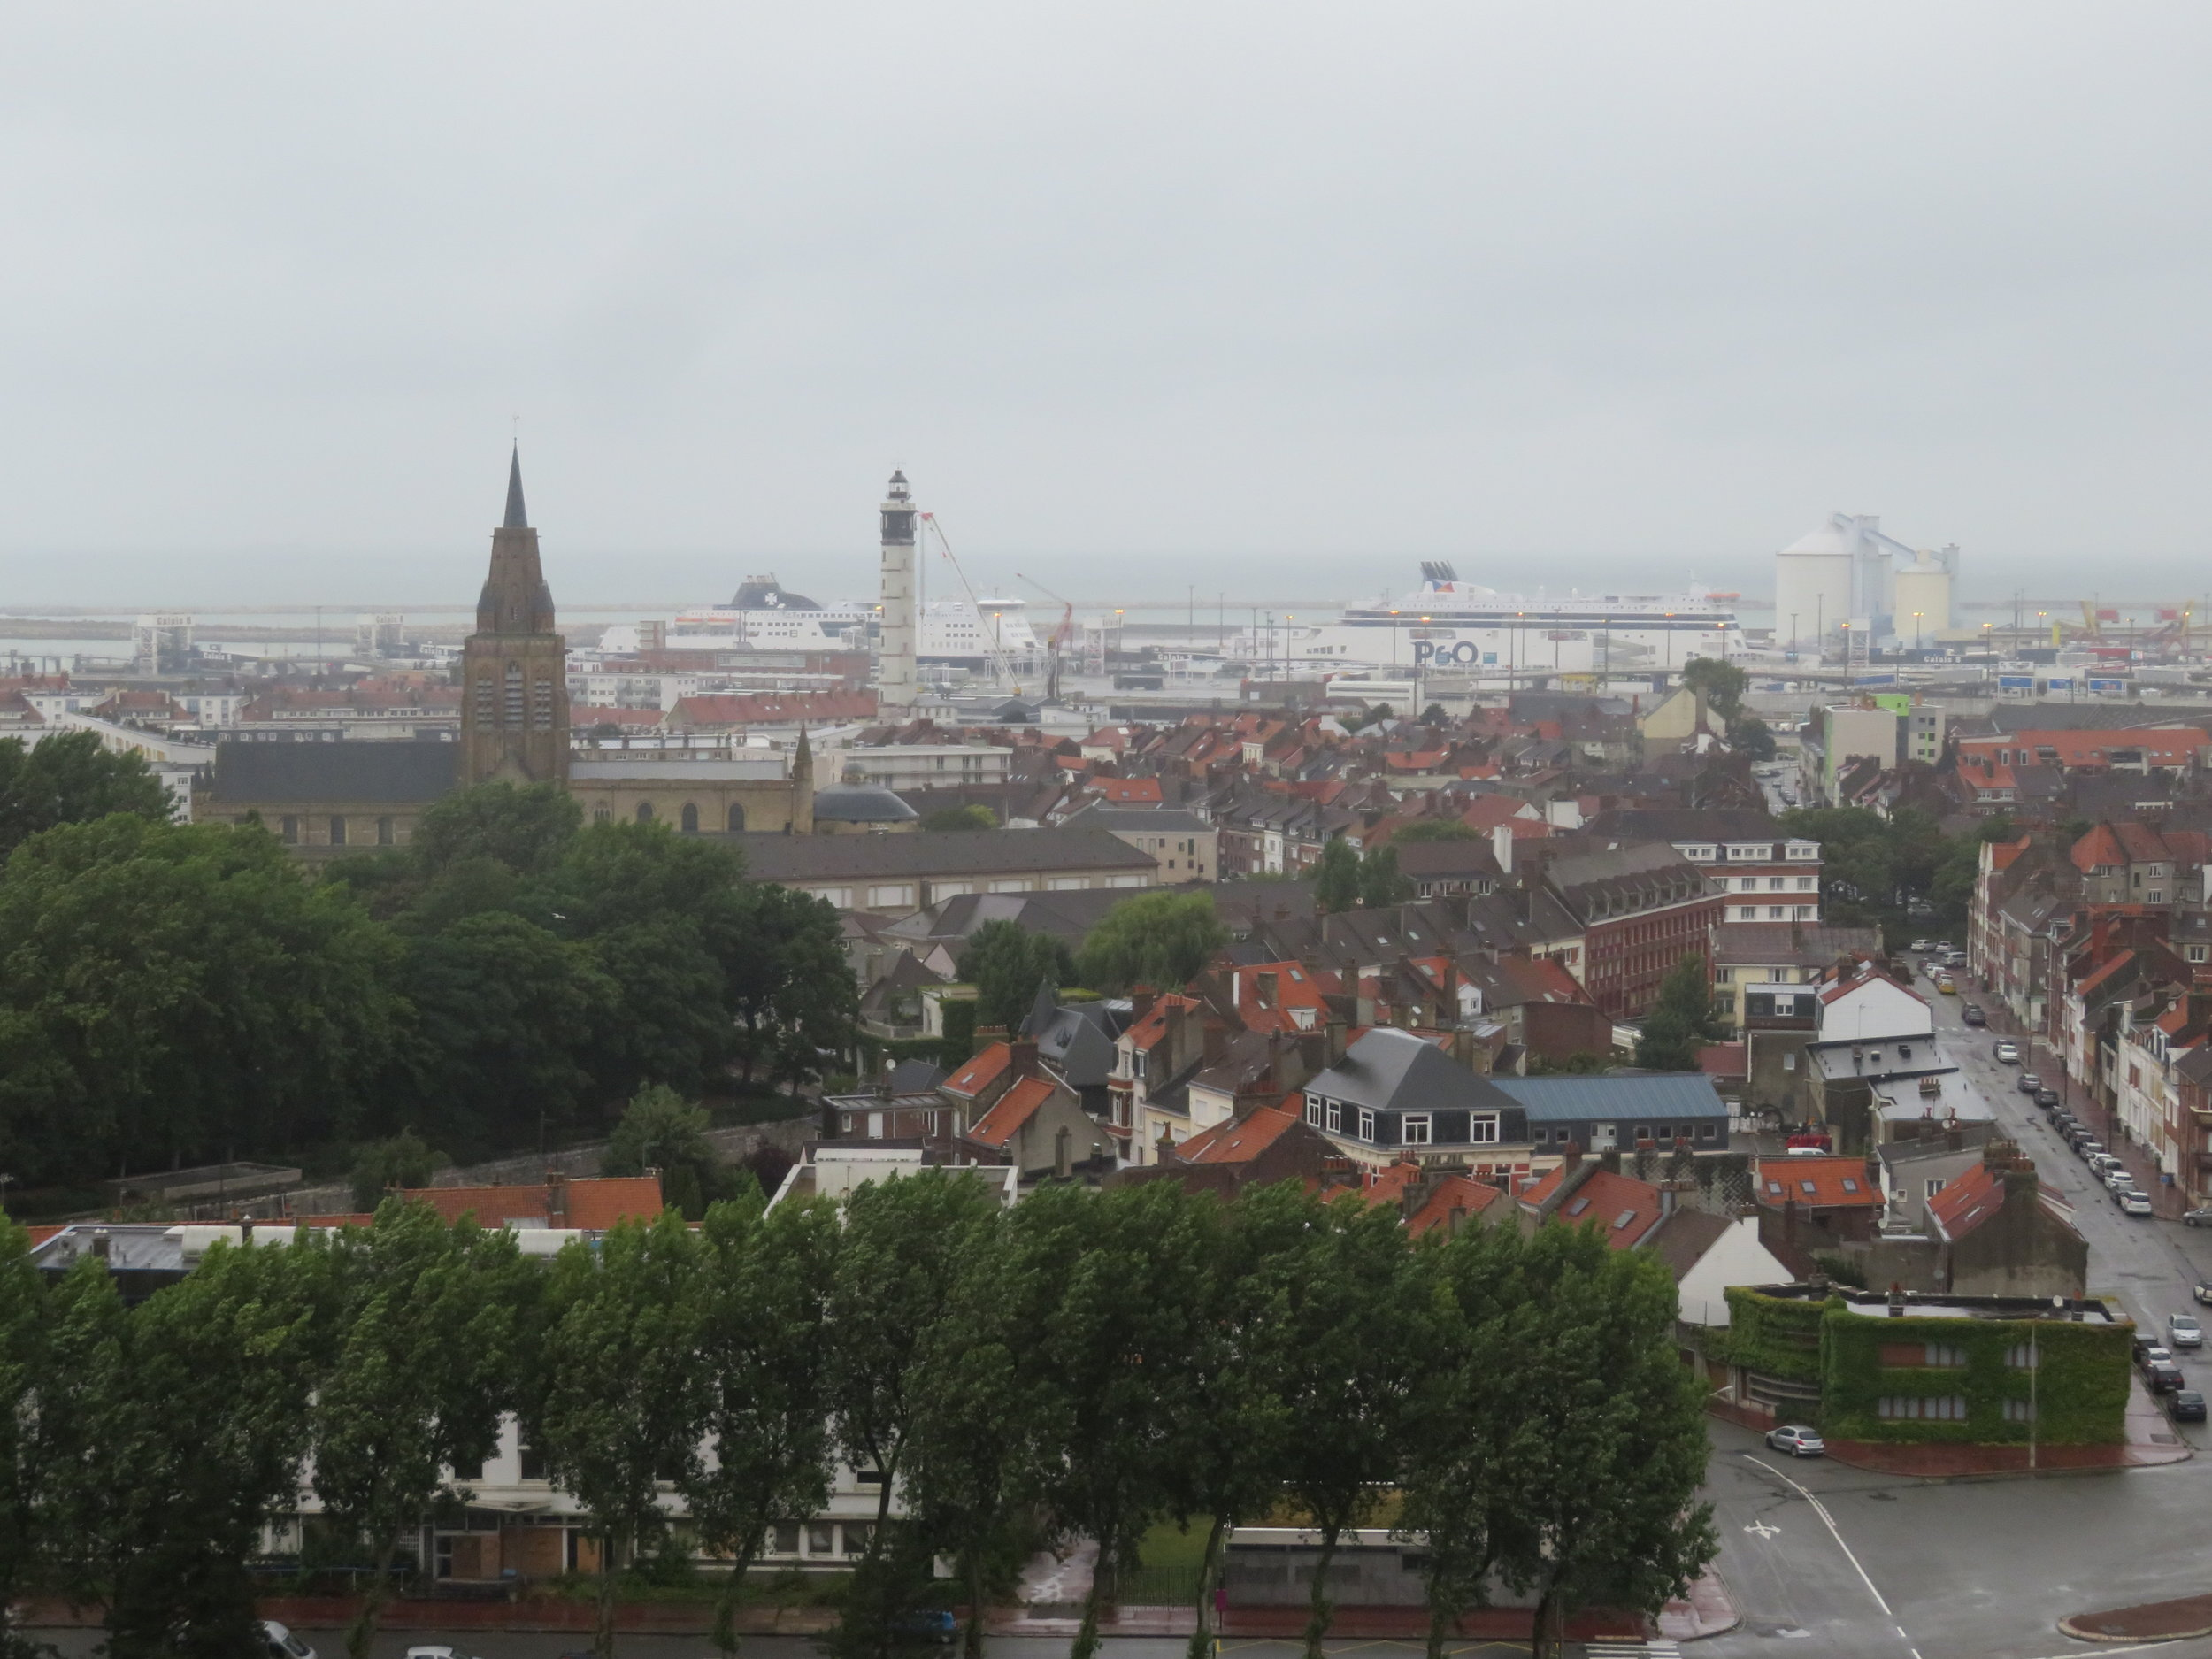 Though it was still rainy and gusty, we opted to take the elevator to the top of the belfry for panortamic views.